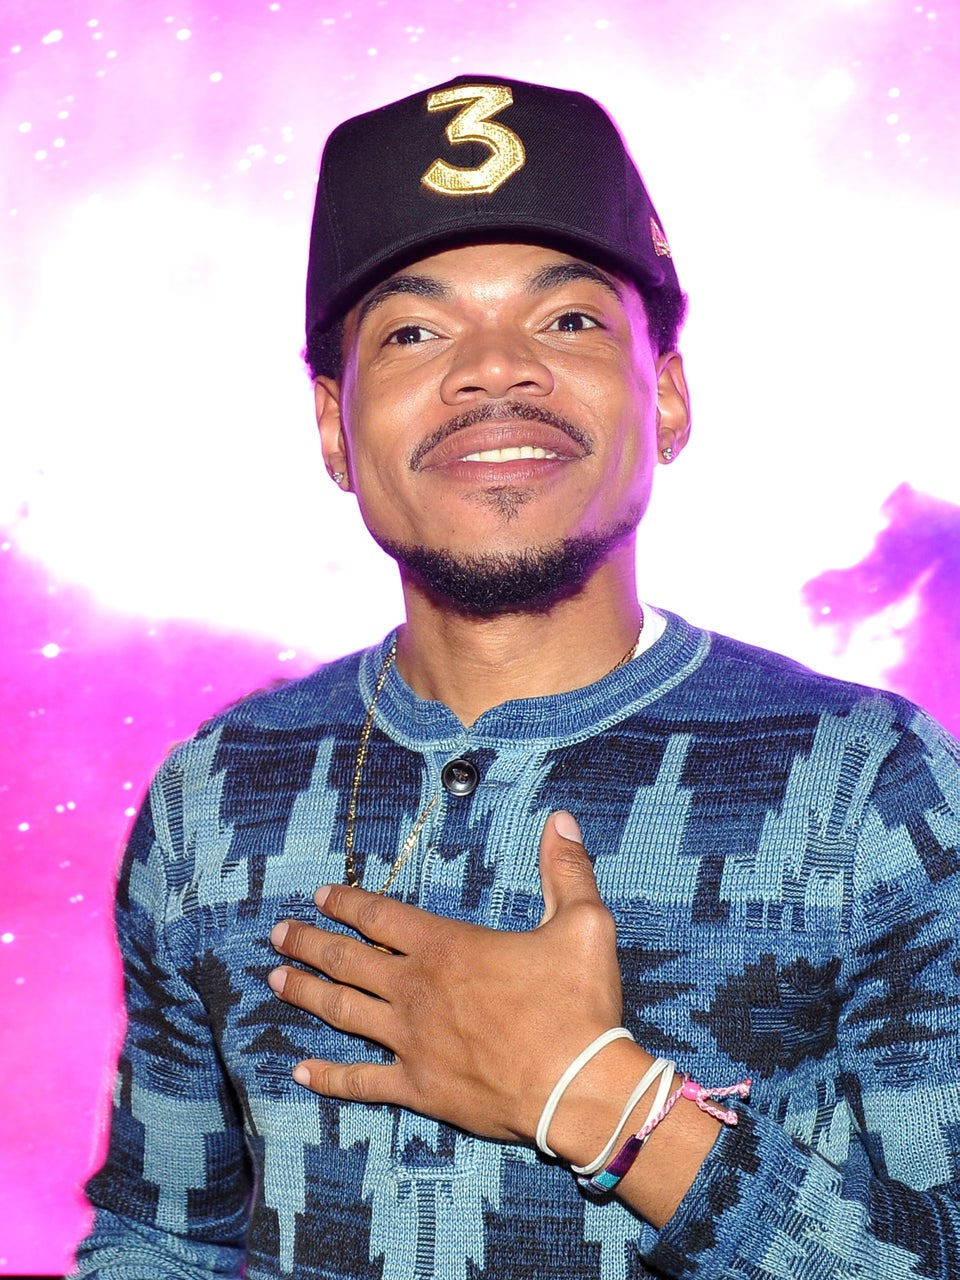 Chance the Rapper Treats South Side Chicago Residents To Free 'Get Out' Showings